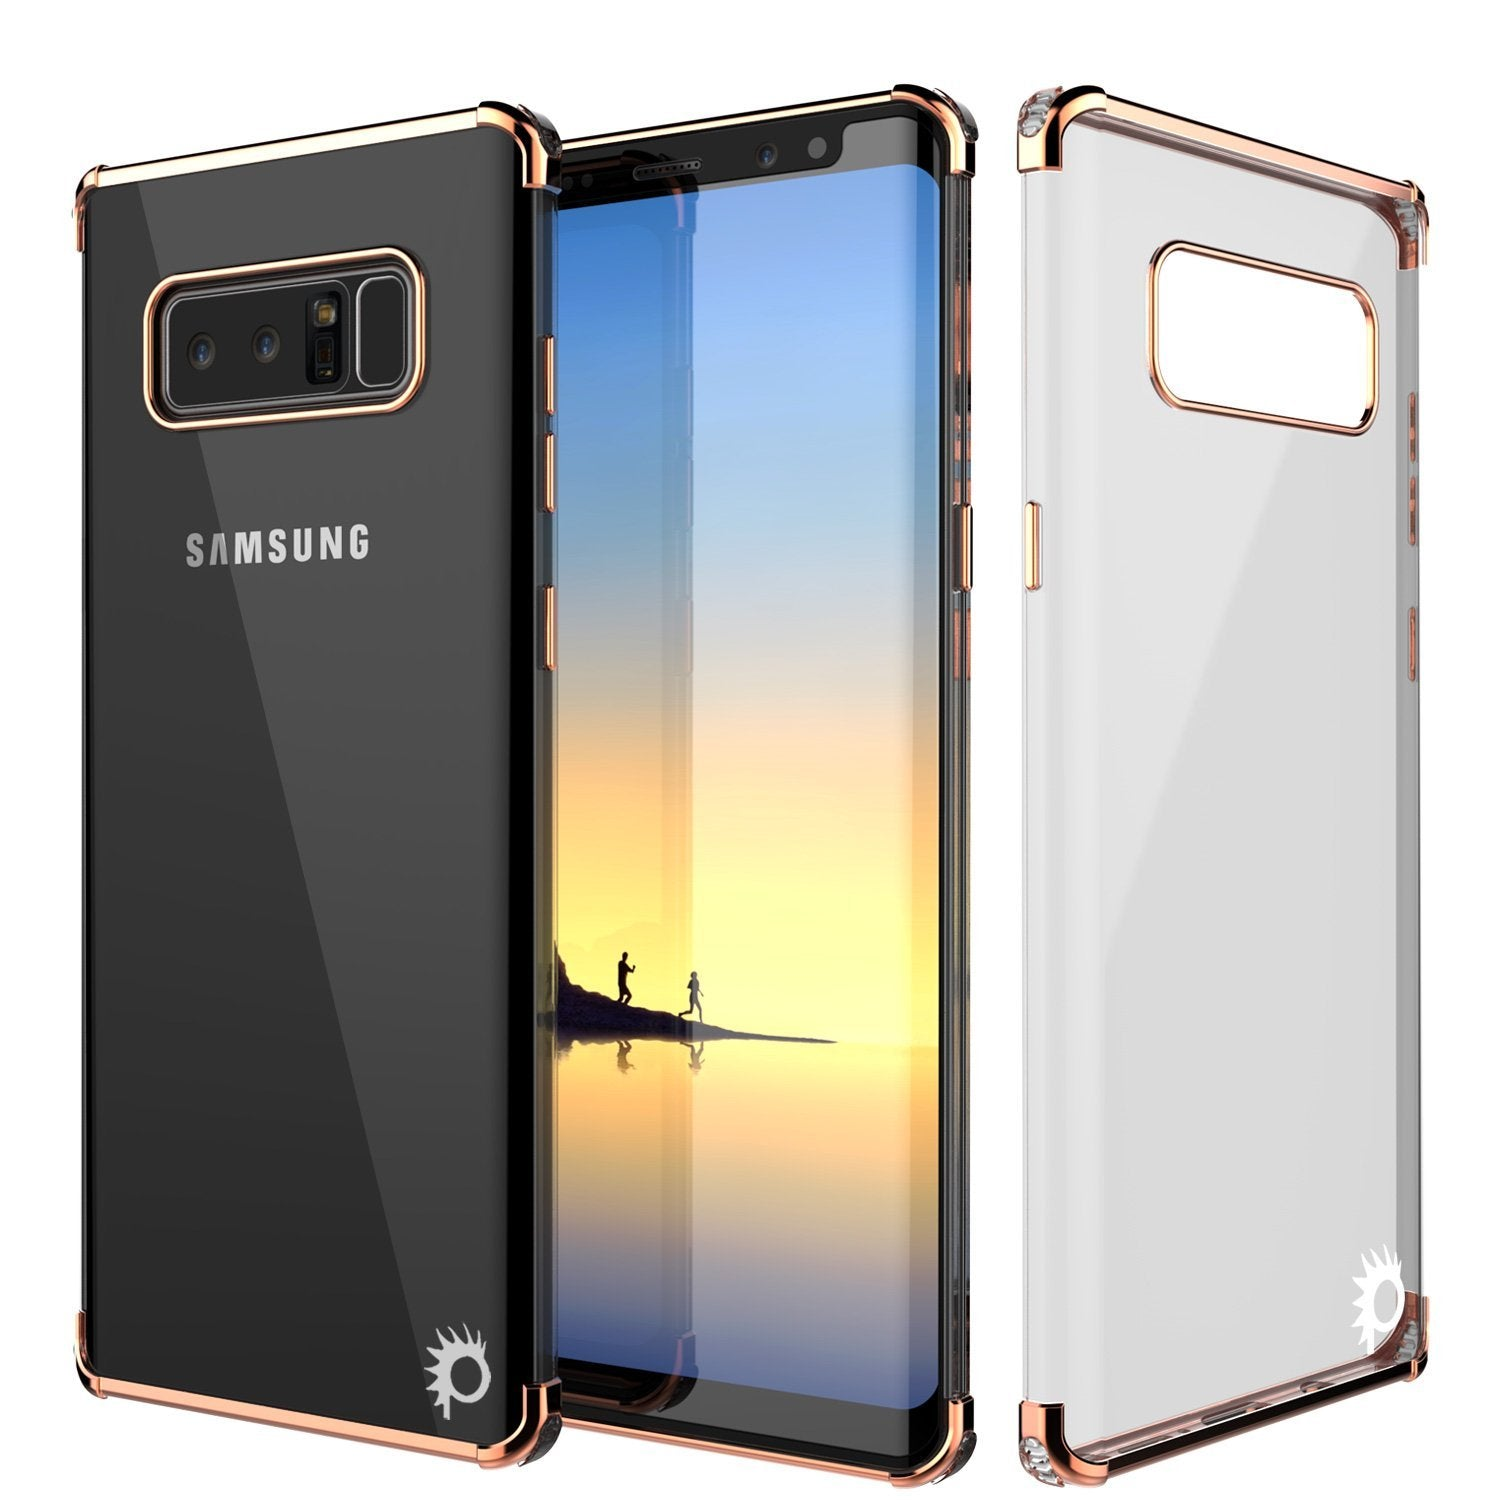 Galaxy Note 8 Punkcase Slim-Fit Case W/ Screen Protector [Rose Gold]